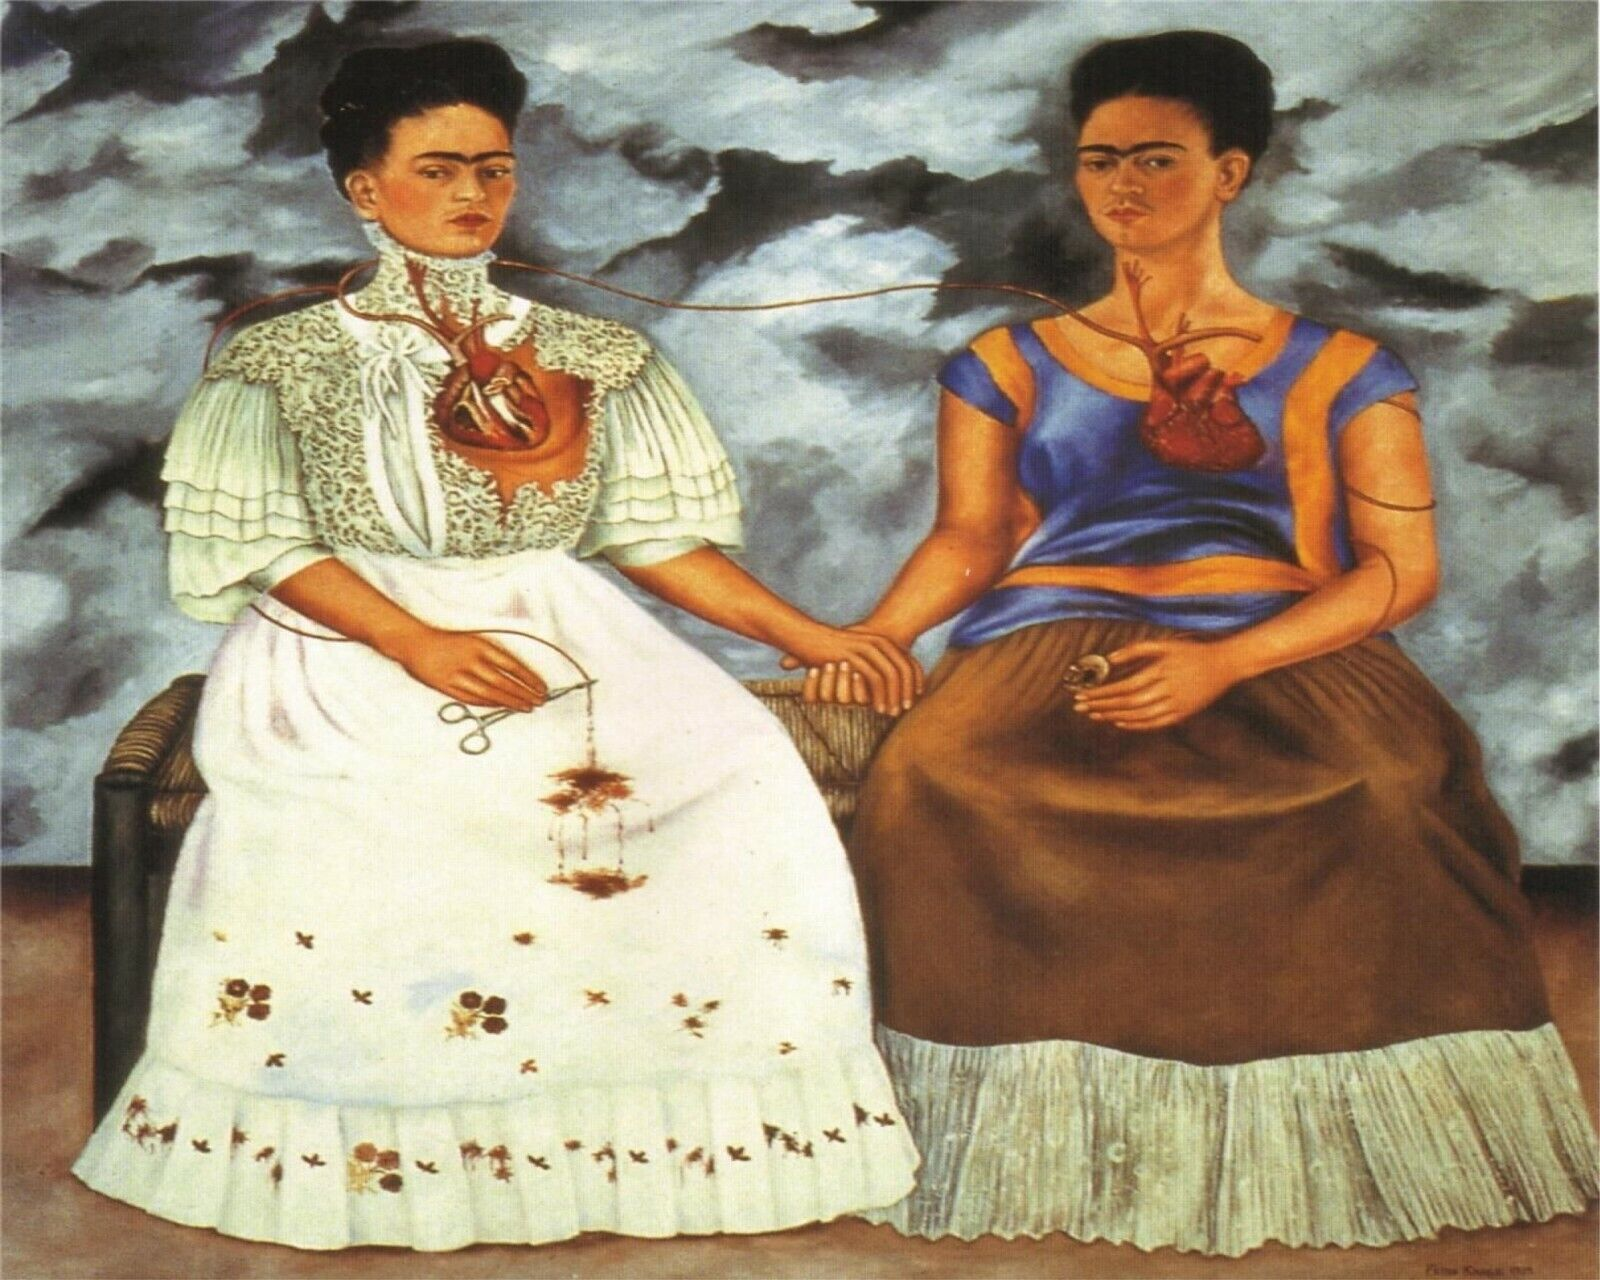 Self Portrait by Frida Kahlo 19 Van-Go Paint-By-Number Kit